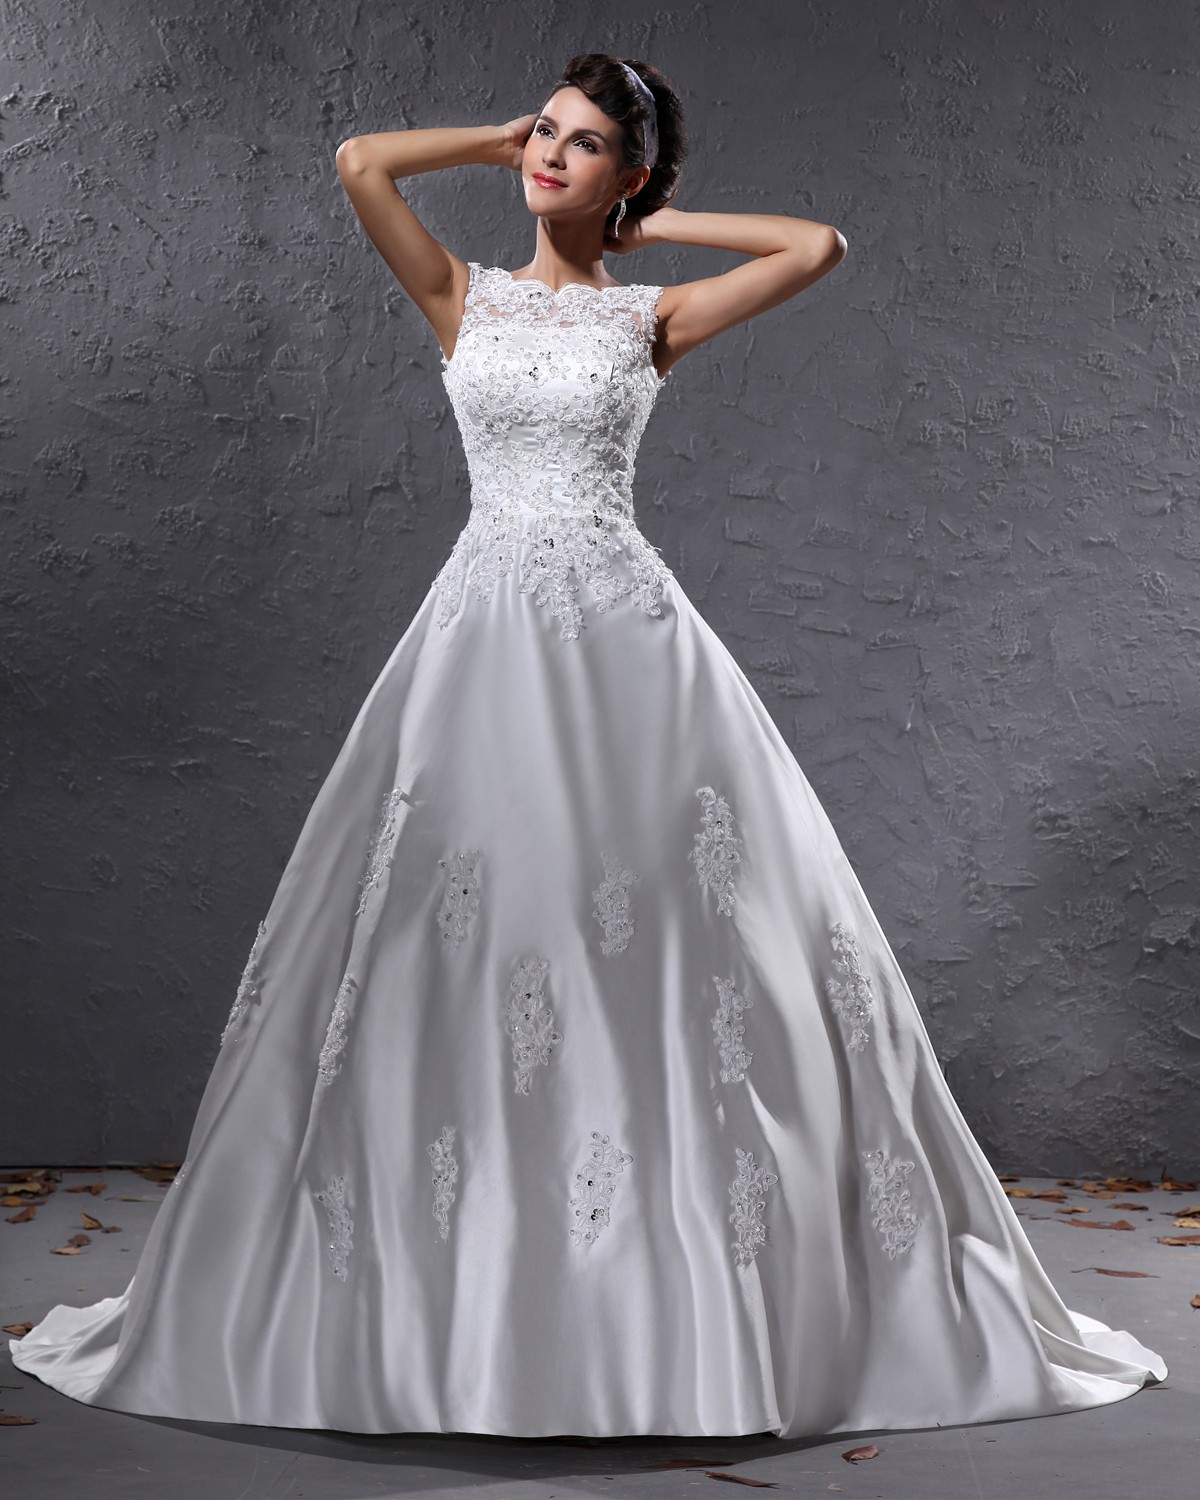 Elegant Satin Beaded Applique Bateau Floor Length Court Train Ball Gown Wedding Dress